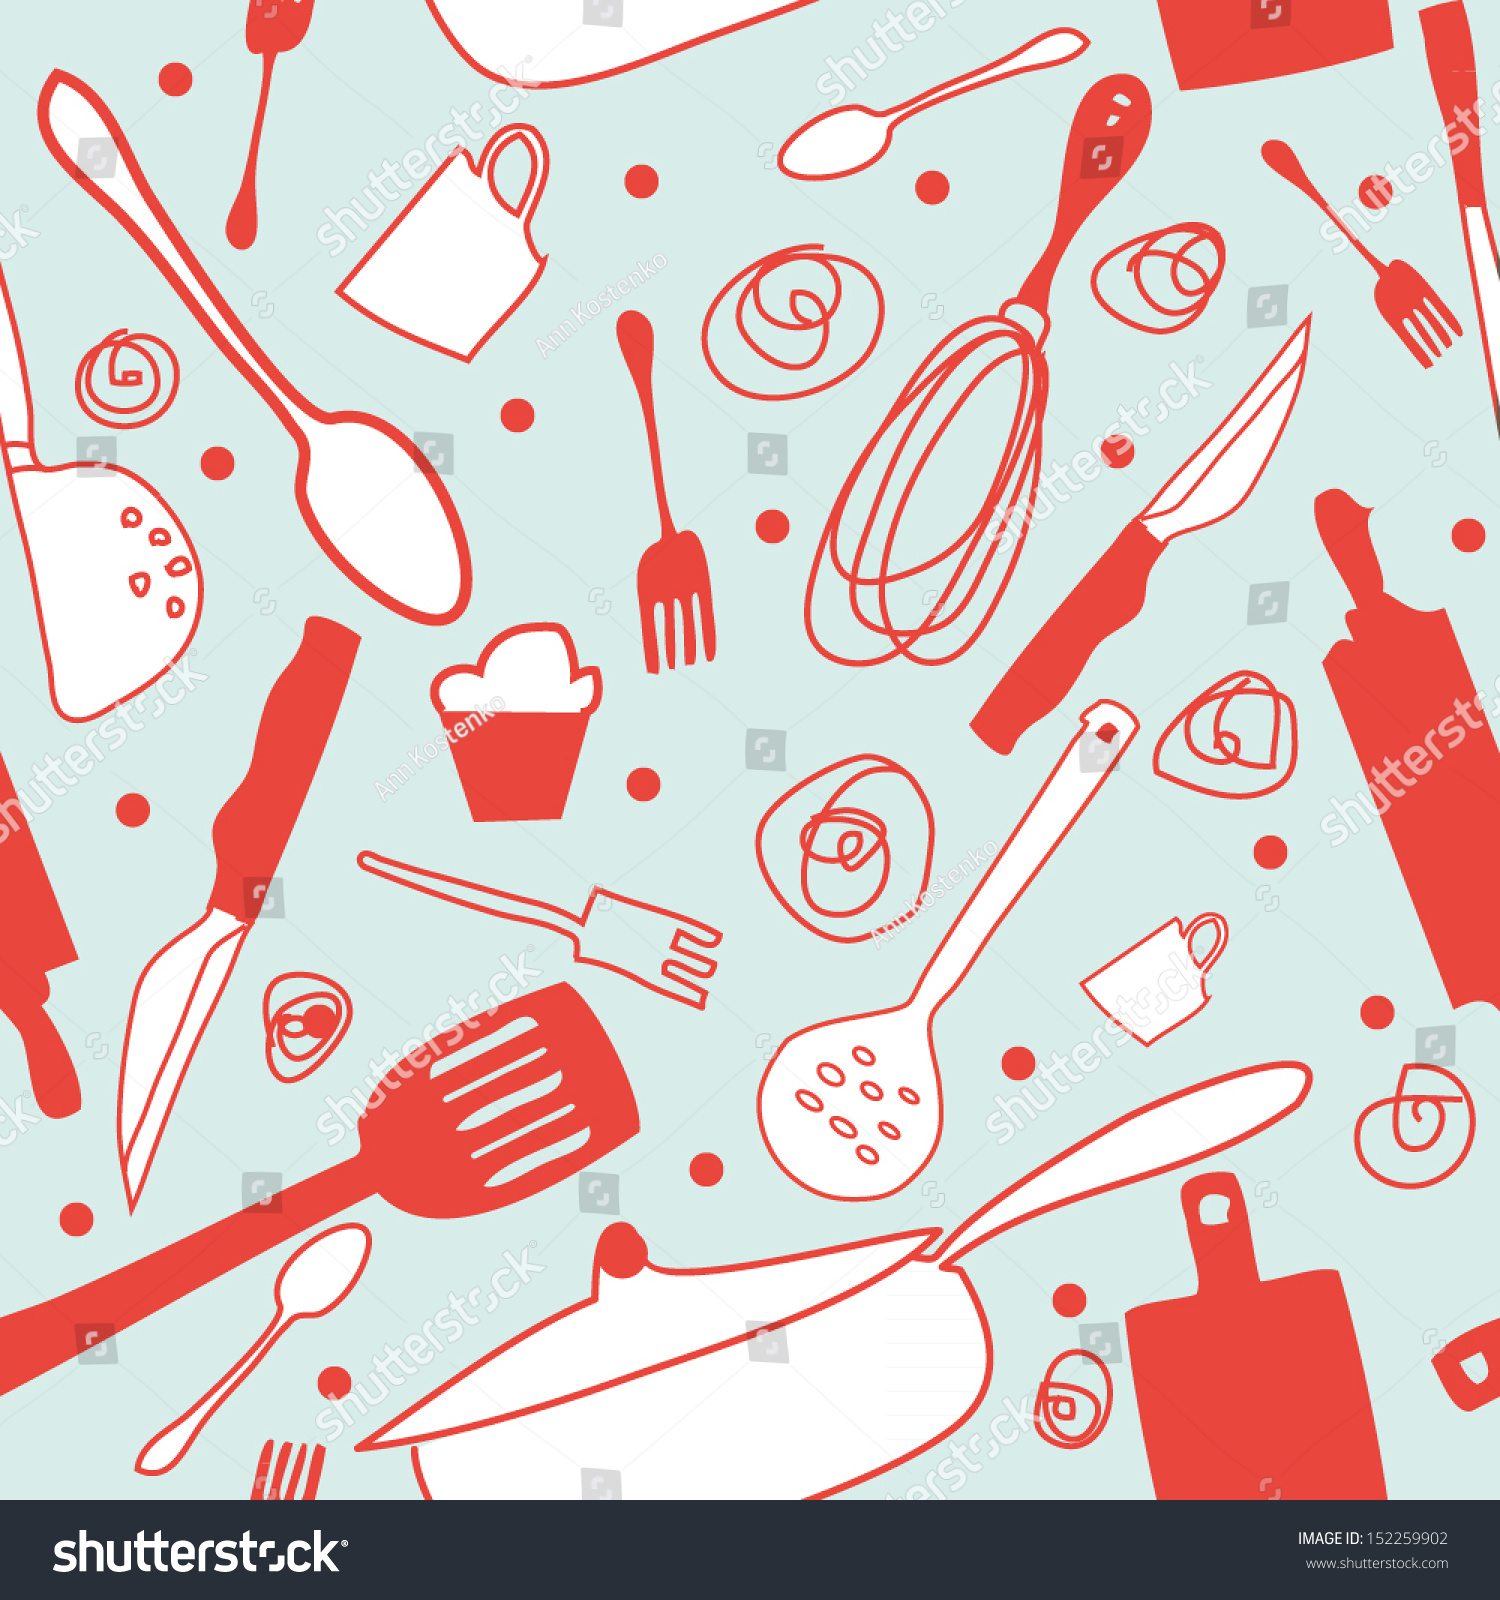 Wallpaper For Kitchen Watch More Like Seamless Kitchen Wallpaper Designs